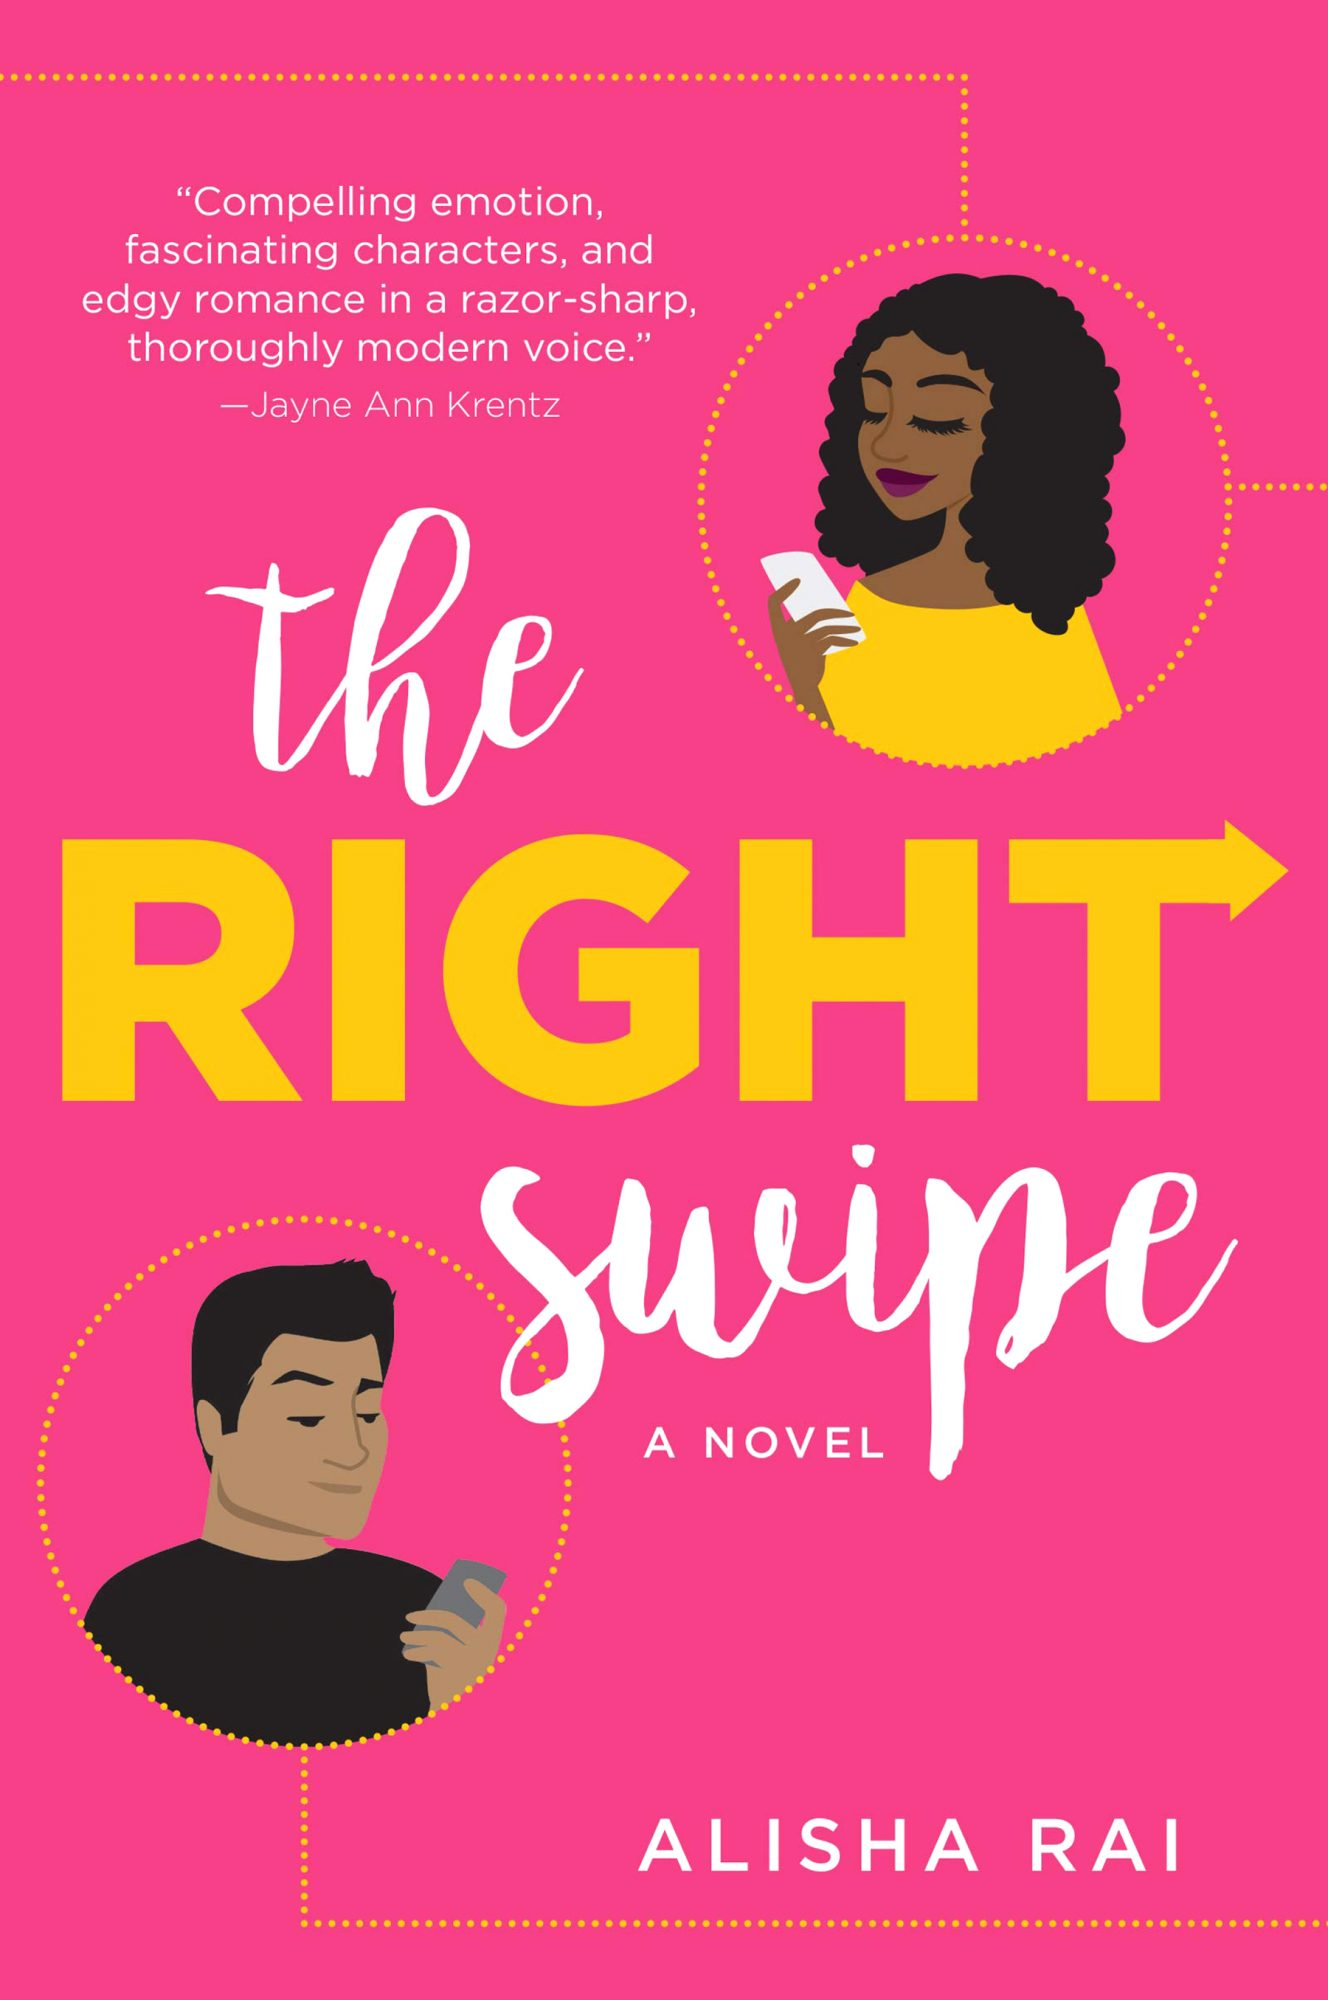 The Right Swipe, by Alisha Rai